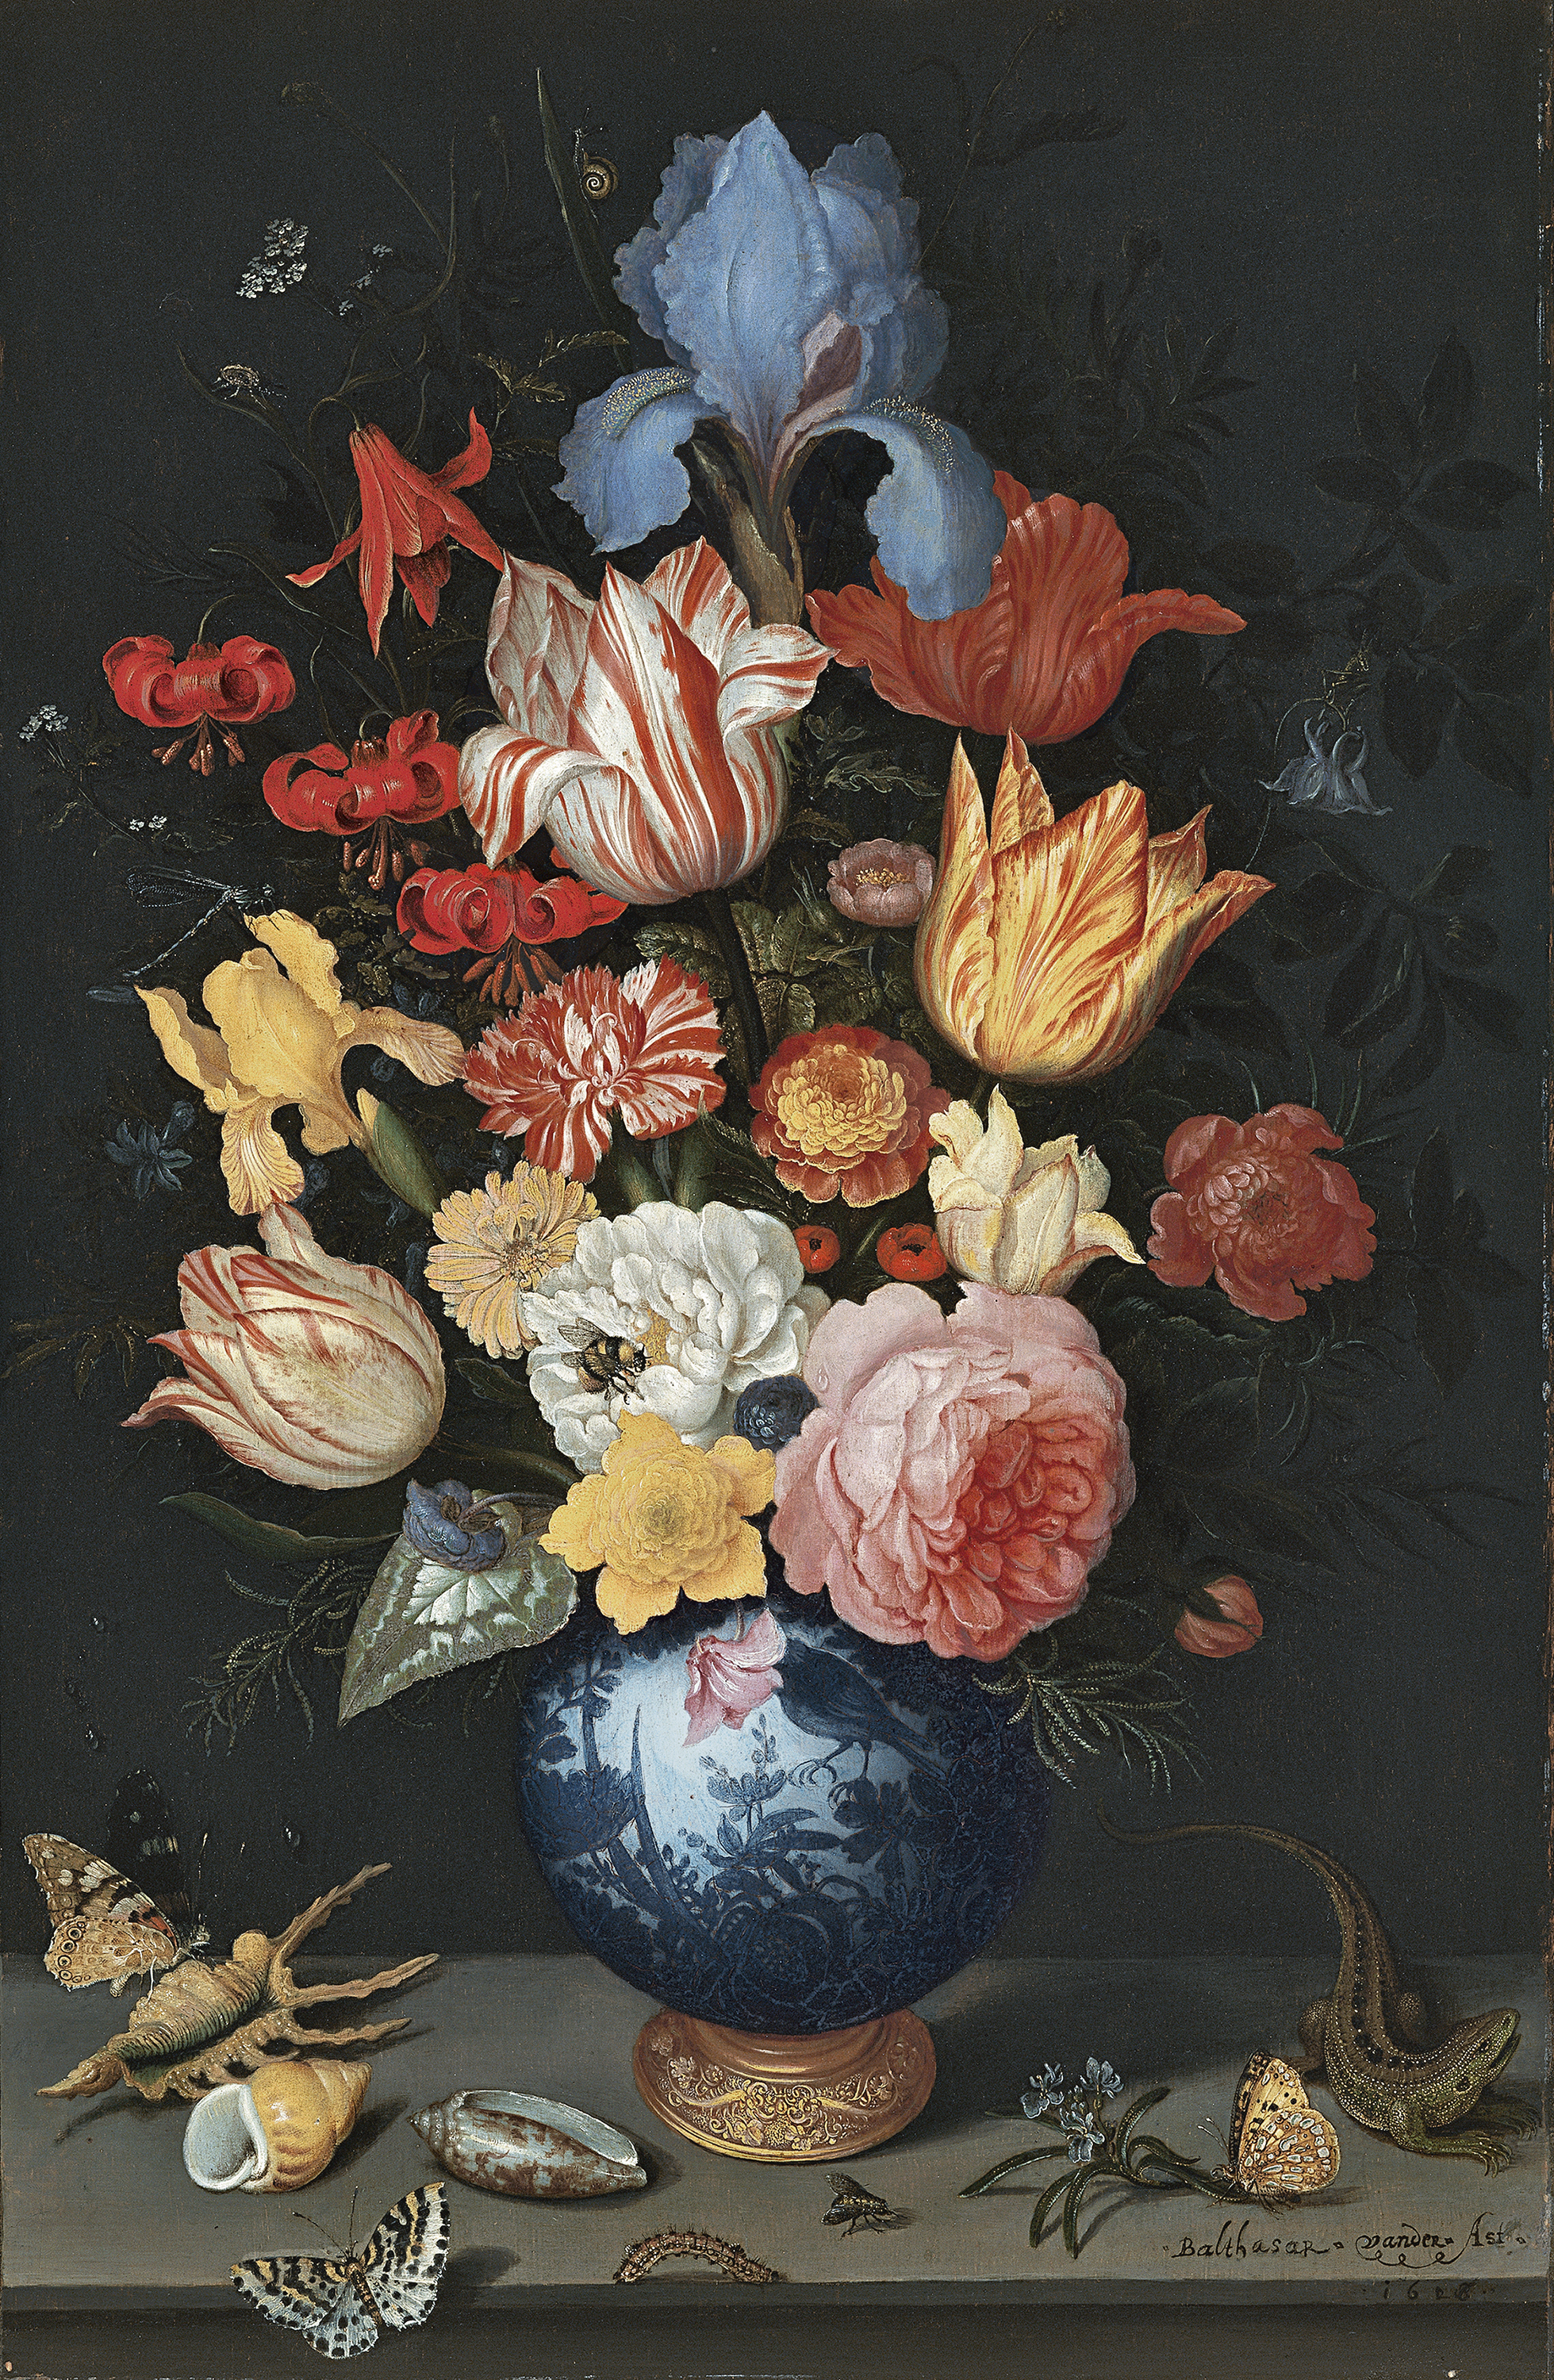 Museo Thyssen & Chinese Vase with Flowers Shells and Insects - Ast Balthasar van ...